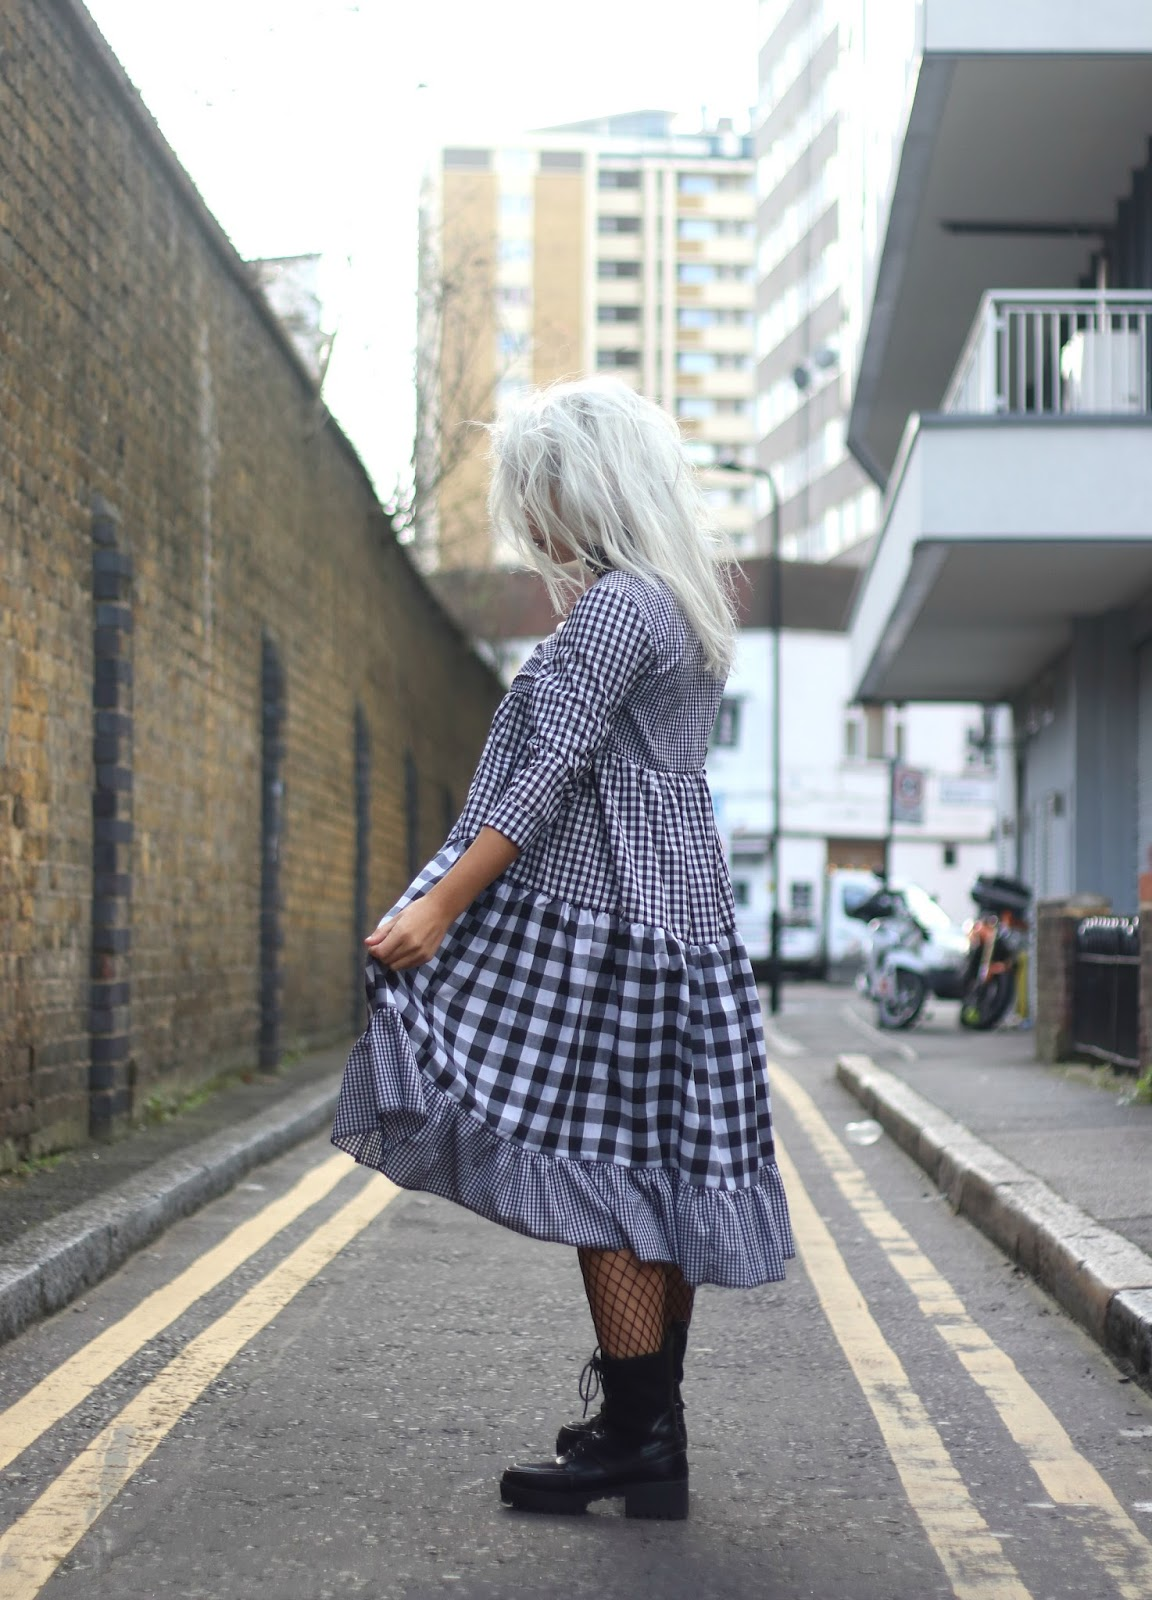 HOW TO WEAR GINGHAM